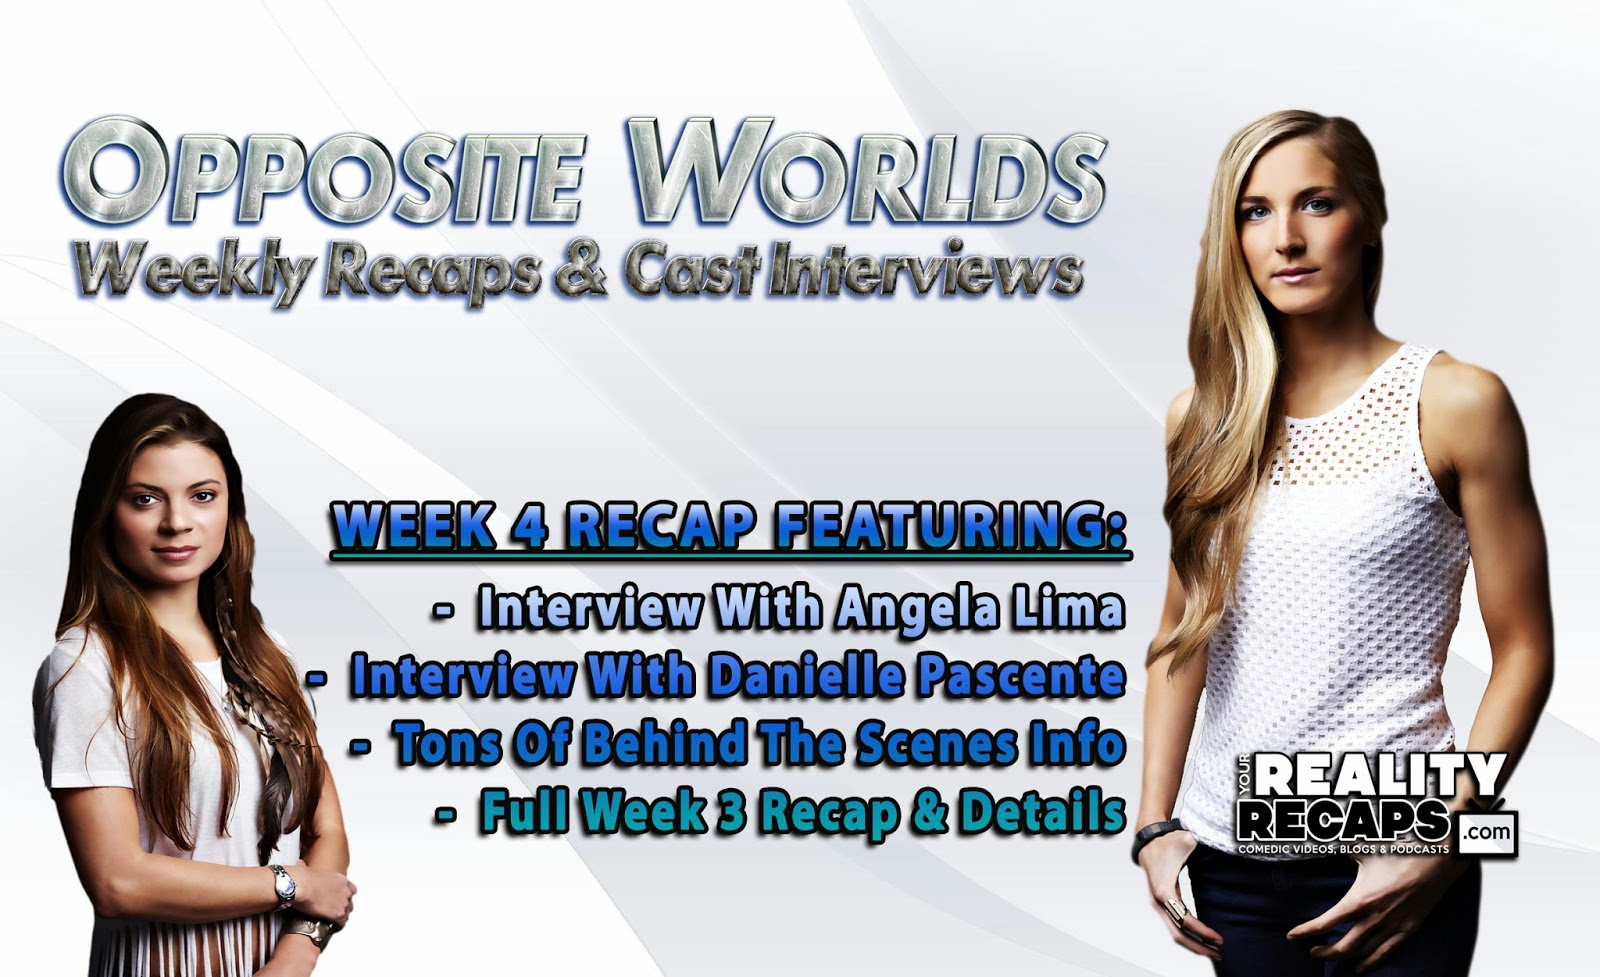 SYFY OPPOSITE WORLDS:  Week 4 Recap With Danielle Pascente & Angela Lima!